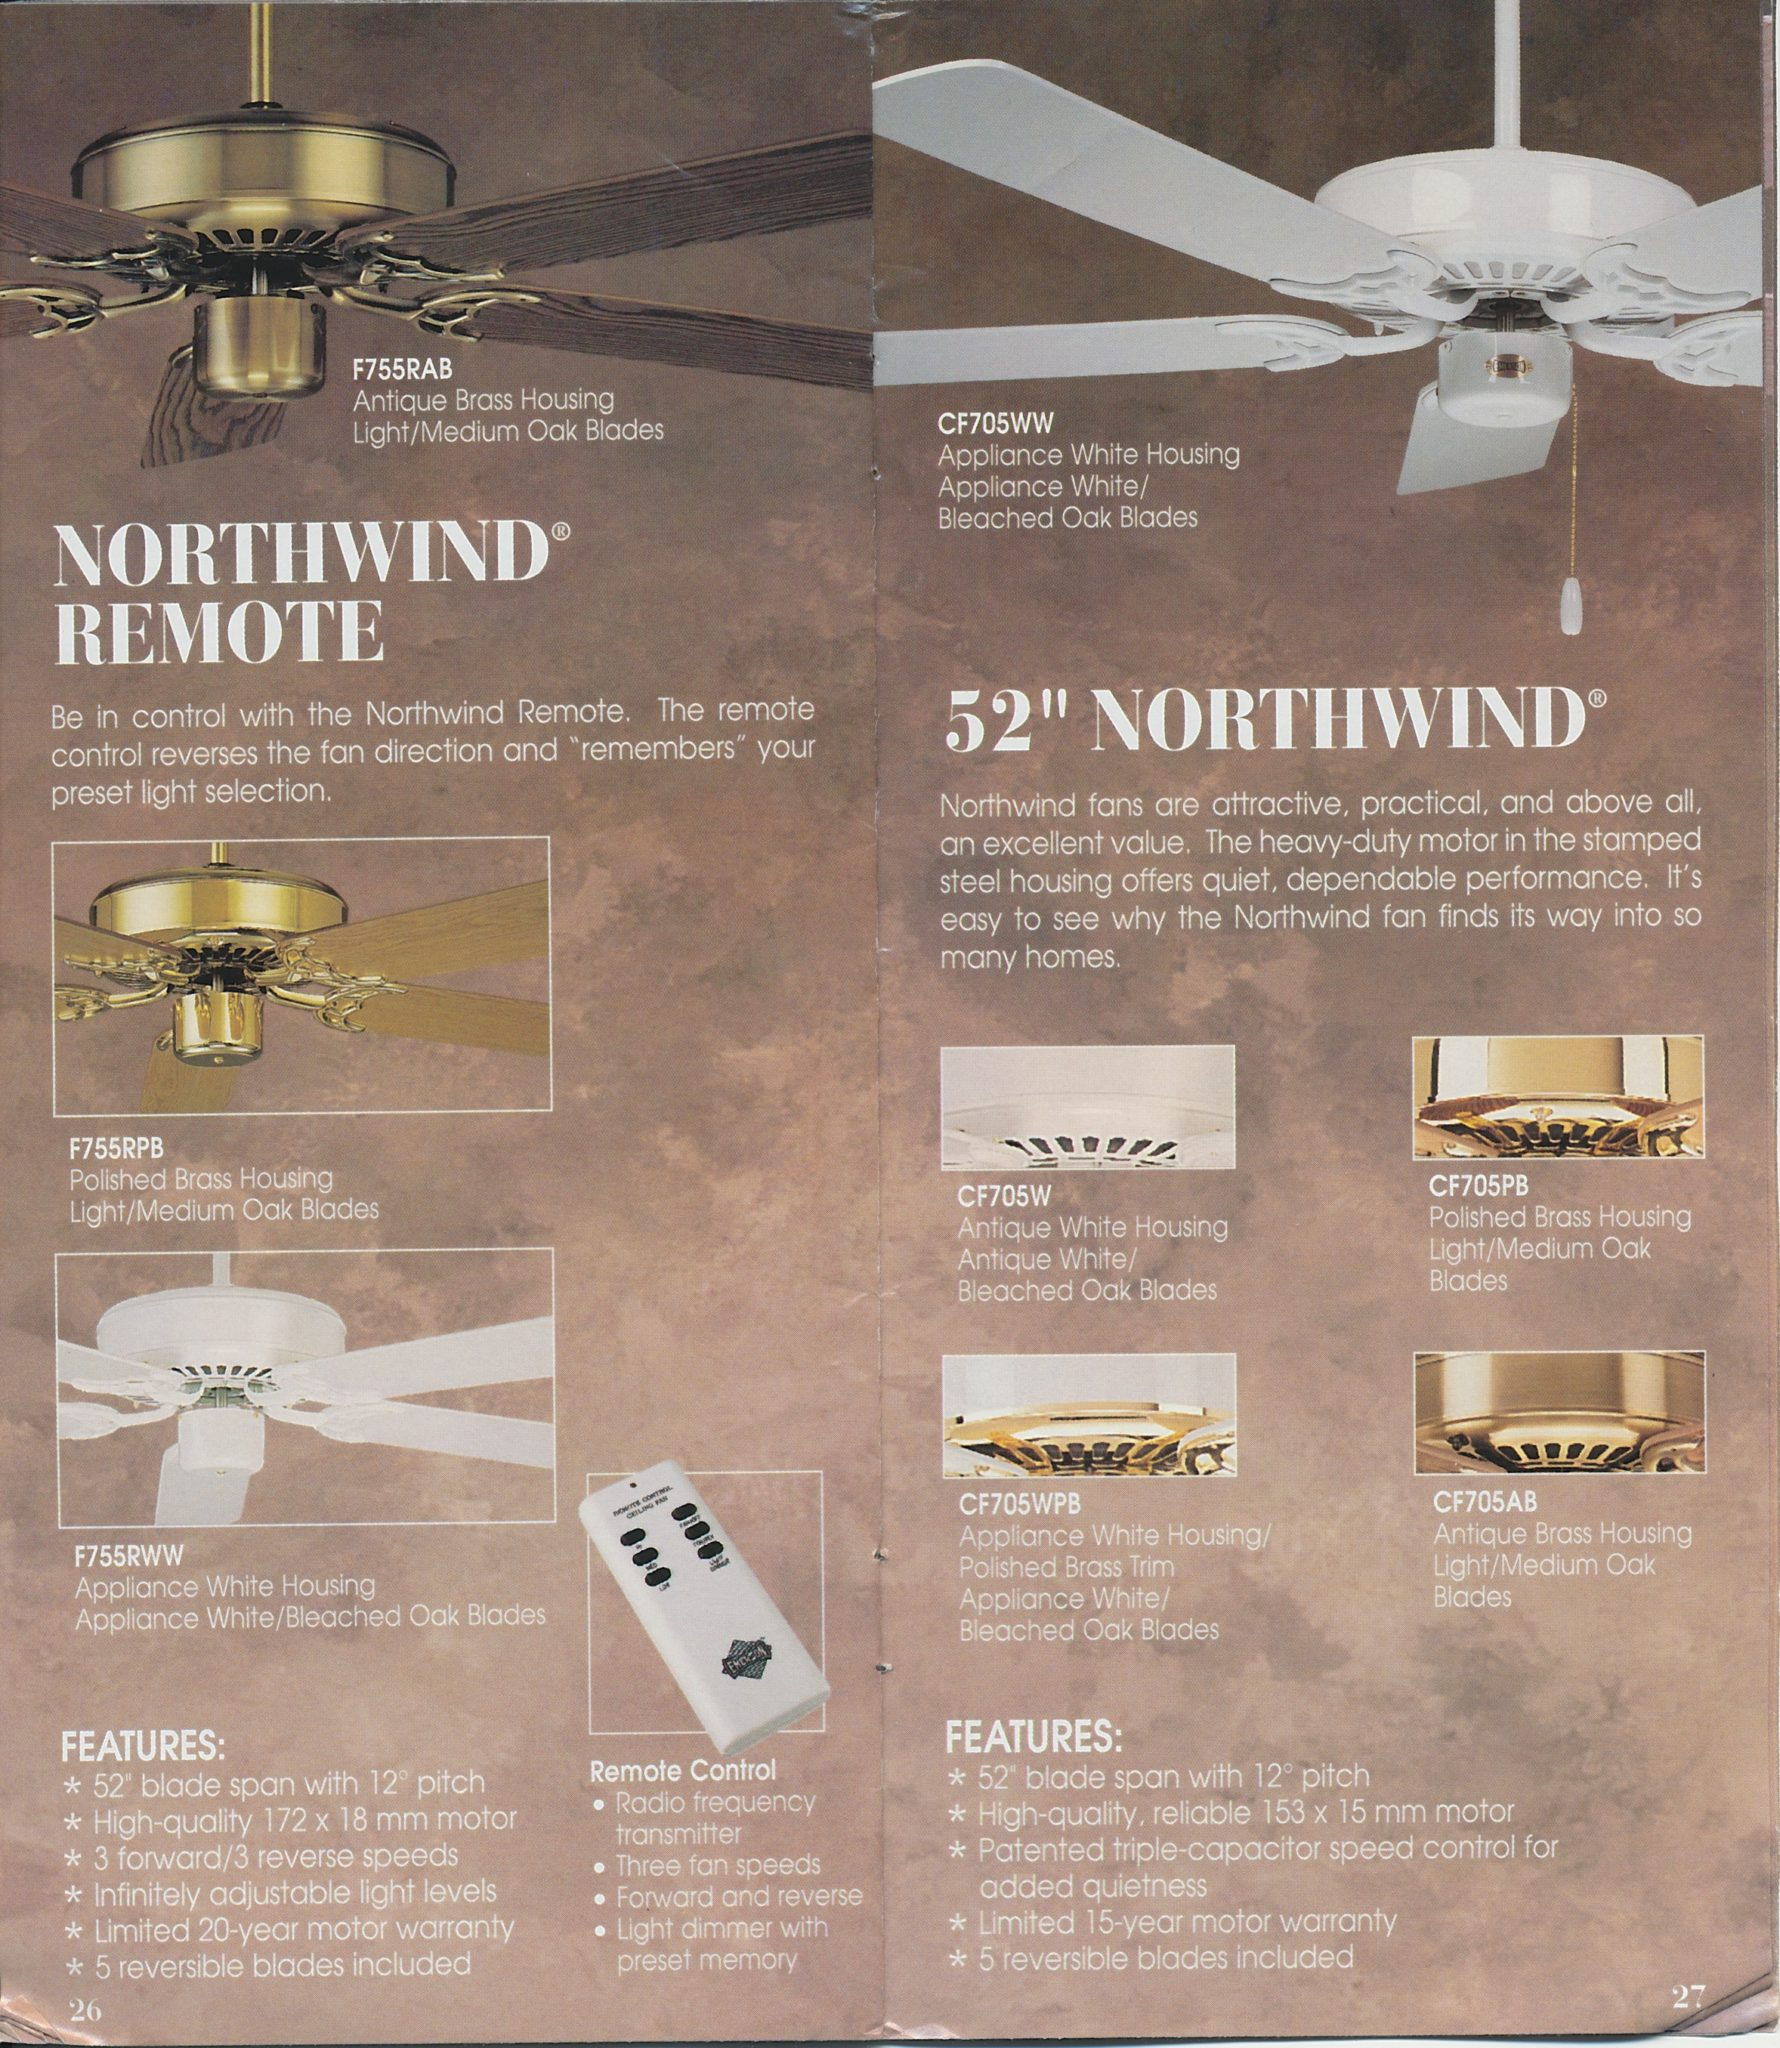 Lovely Northwind Ceiling Fan Pics Beautiful Furniture Home Ideas Antique Emerson Wiring Diagram Catalog 1997